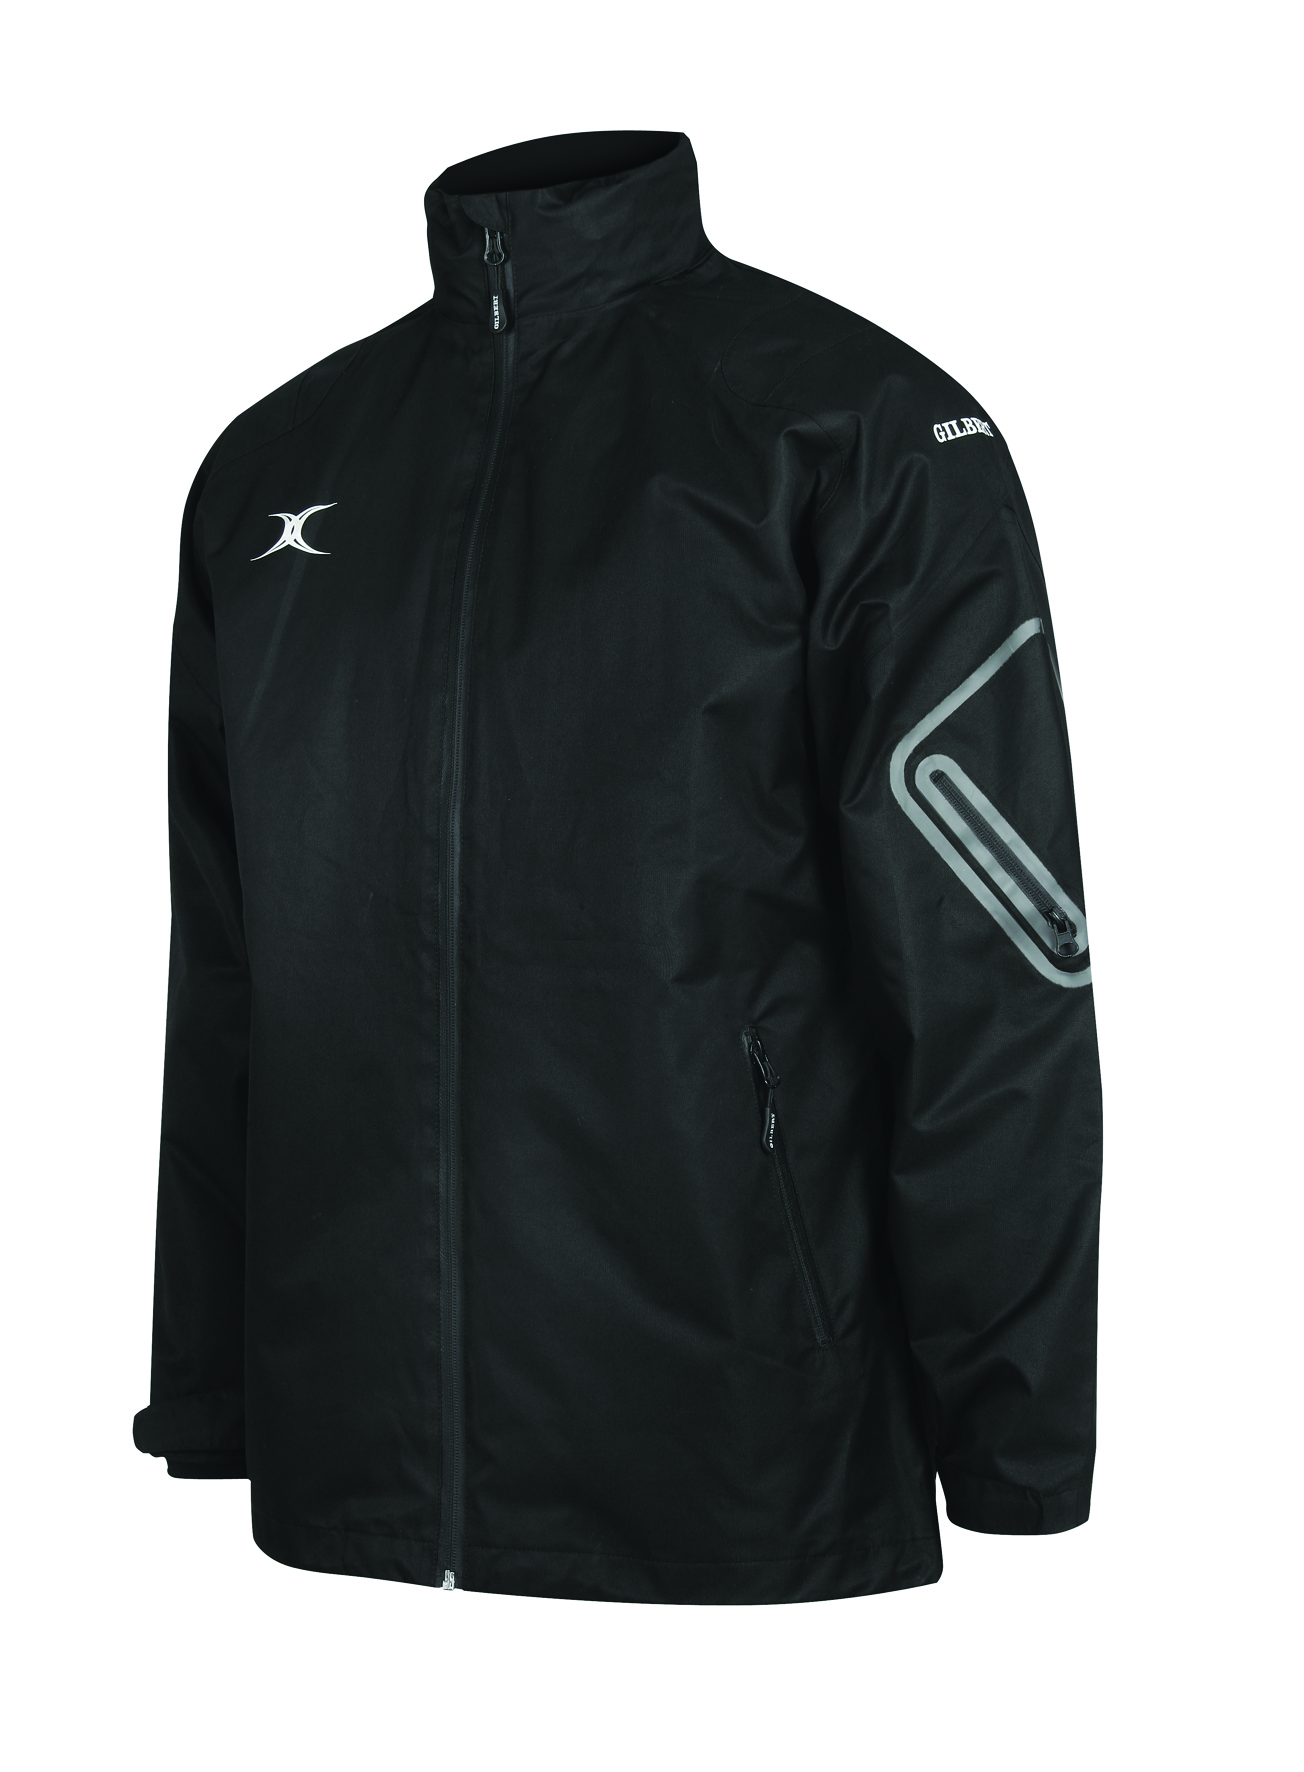 New-Gilbert-Rugby-Jet-Training-Jacket-Virtuo-Waterproof-Jackets-Durable-Coat